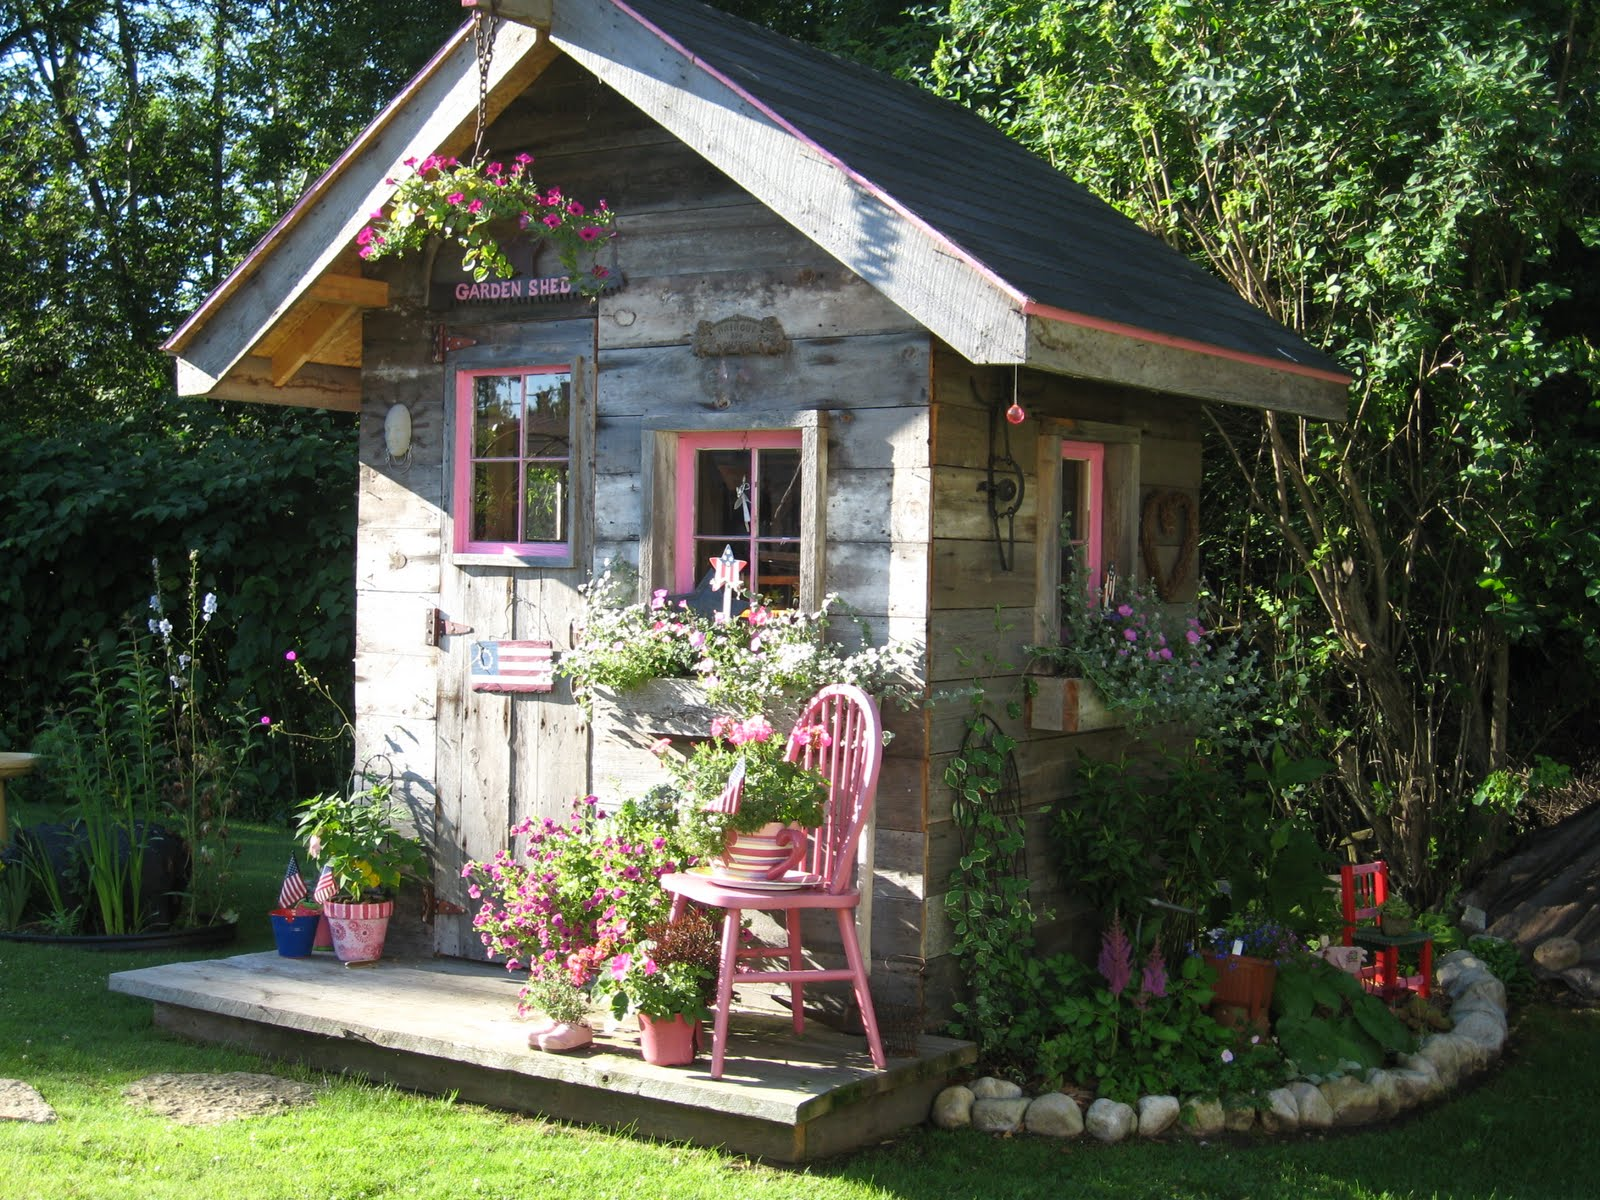 20 wendy houses for the peter pan in you - Plans for garden sheds decor ...